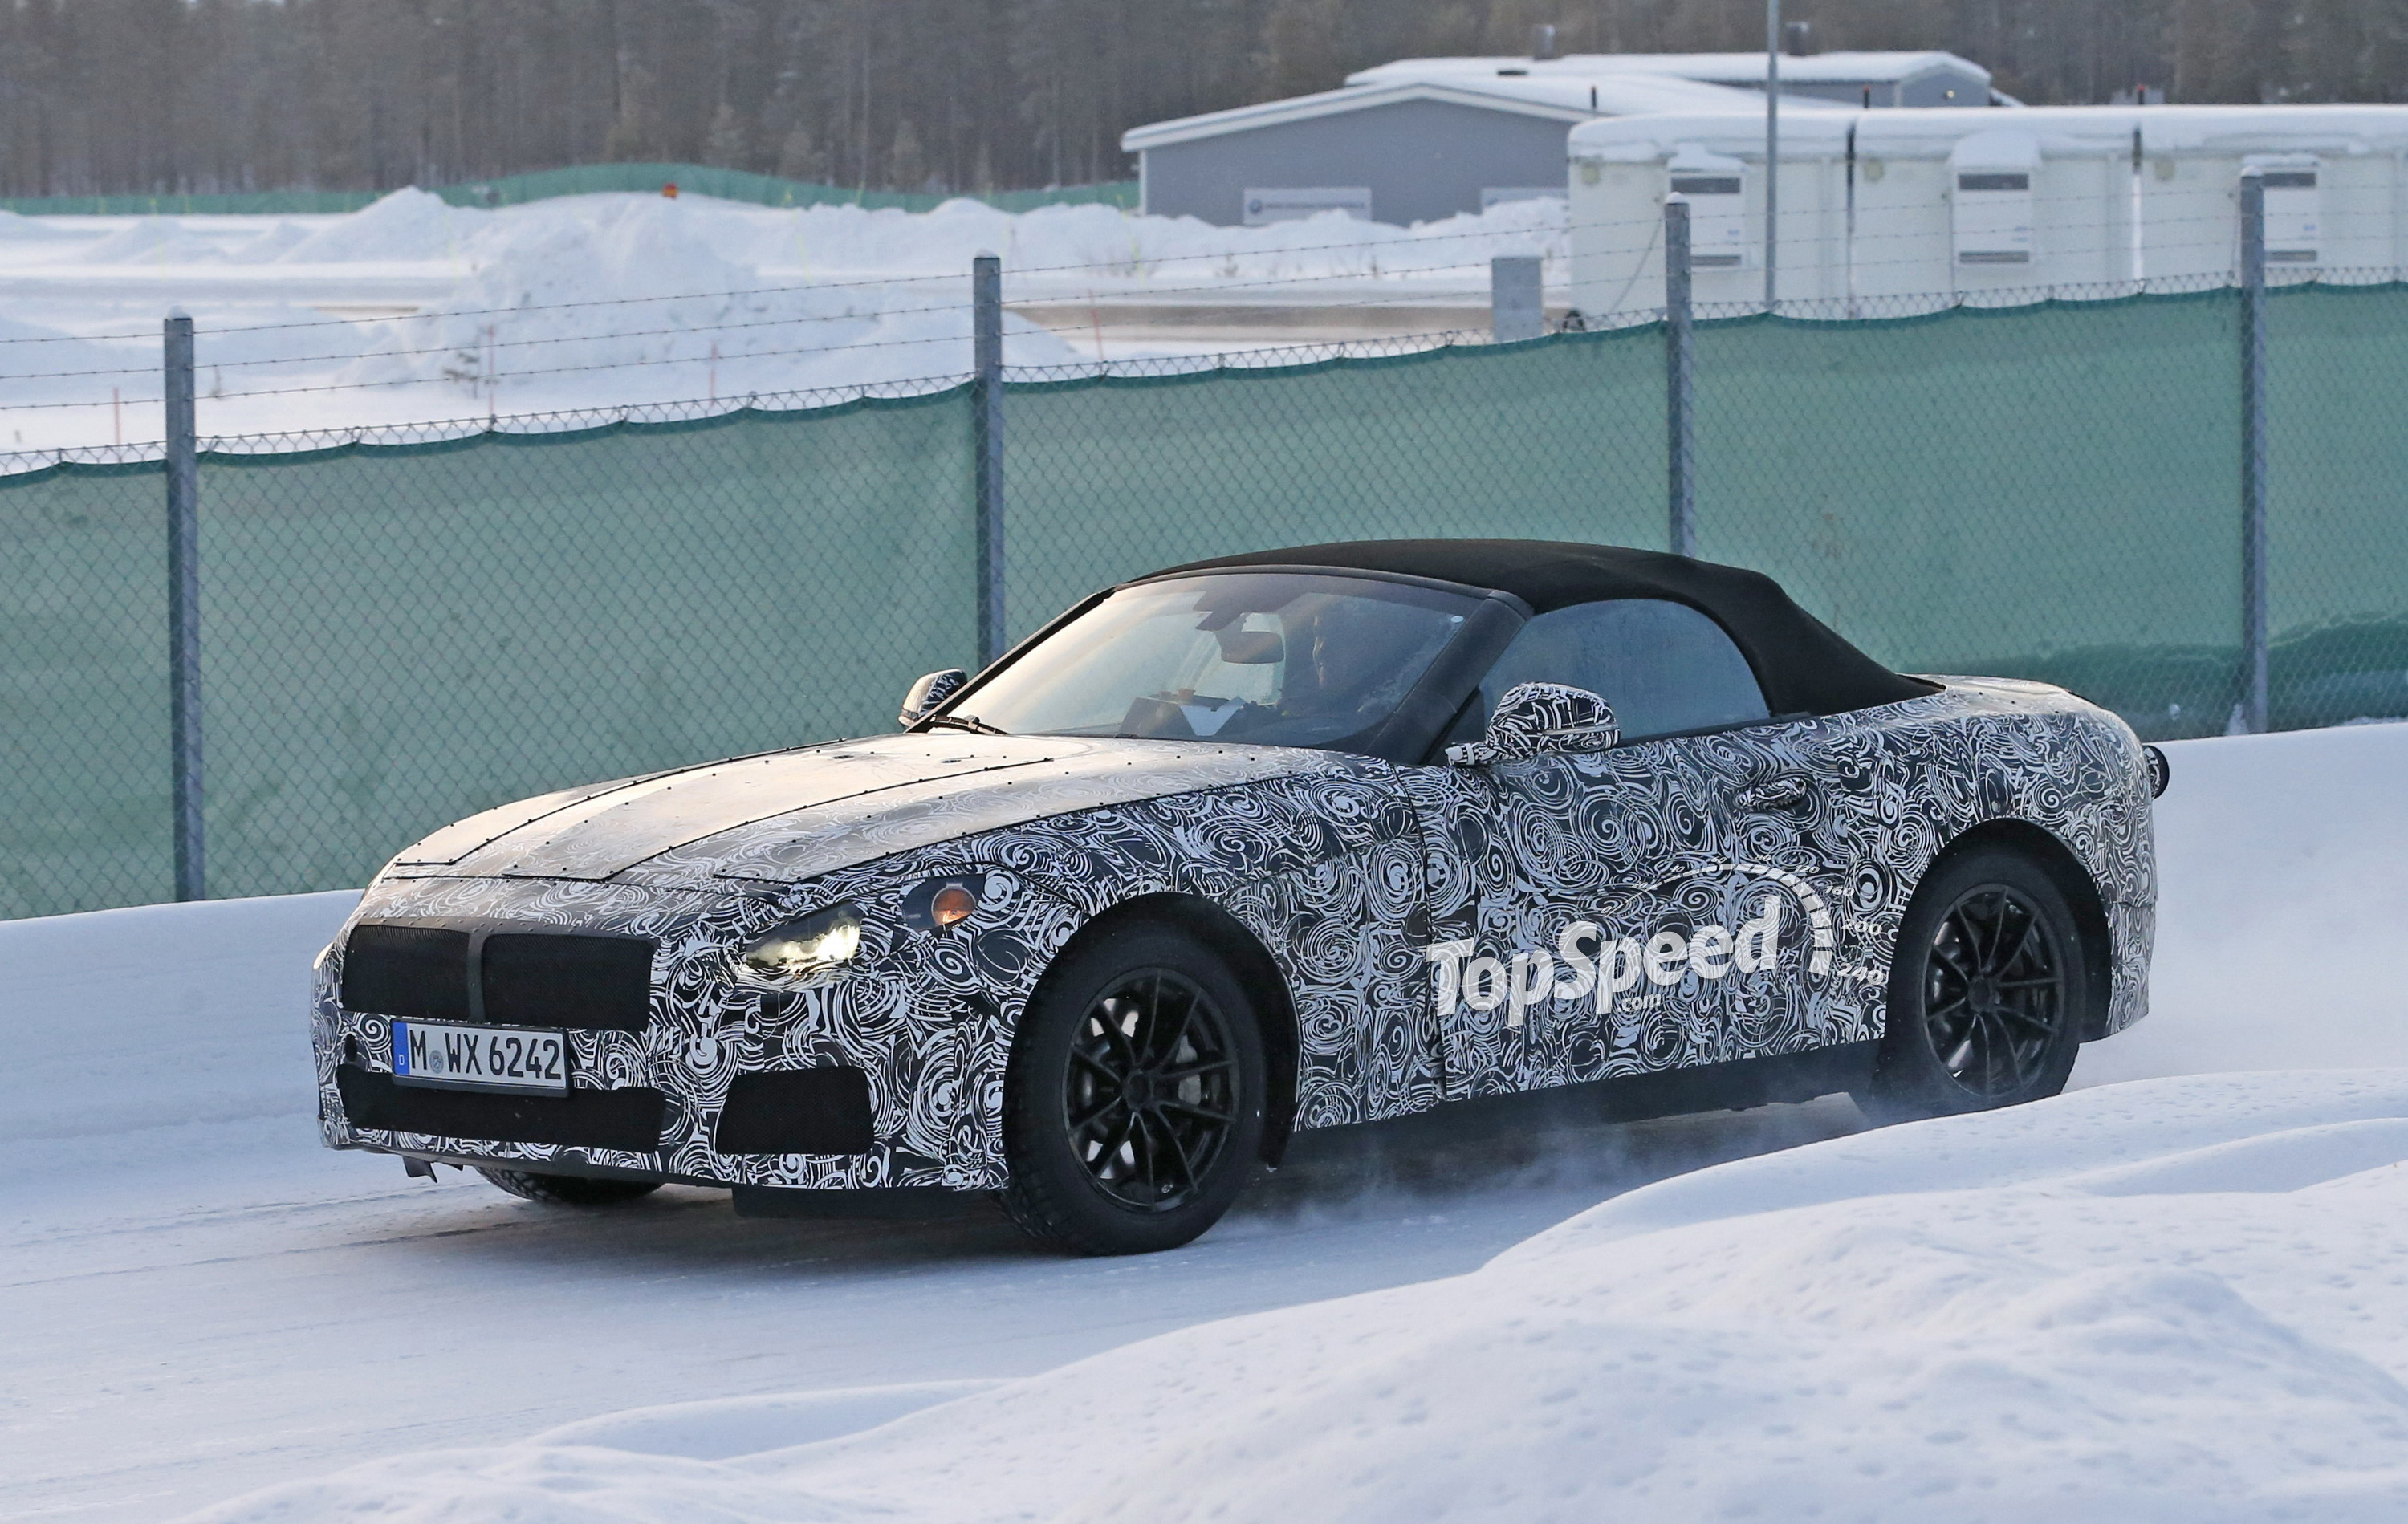 The New Bmw Z4 And Probably The Toyota Supra Will Debut This